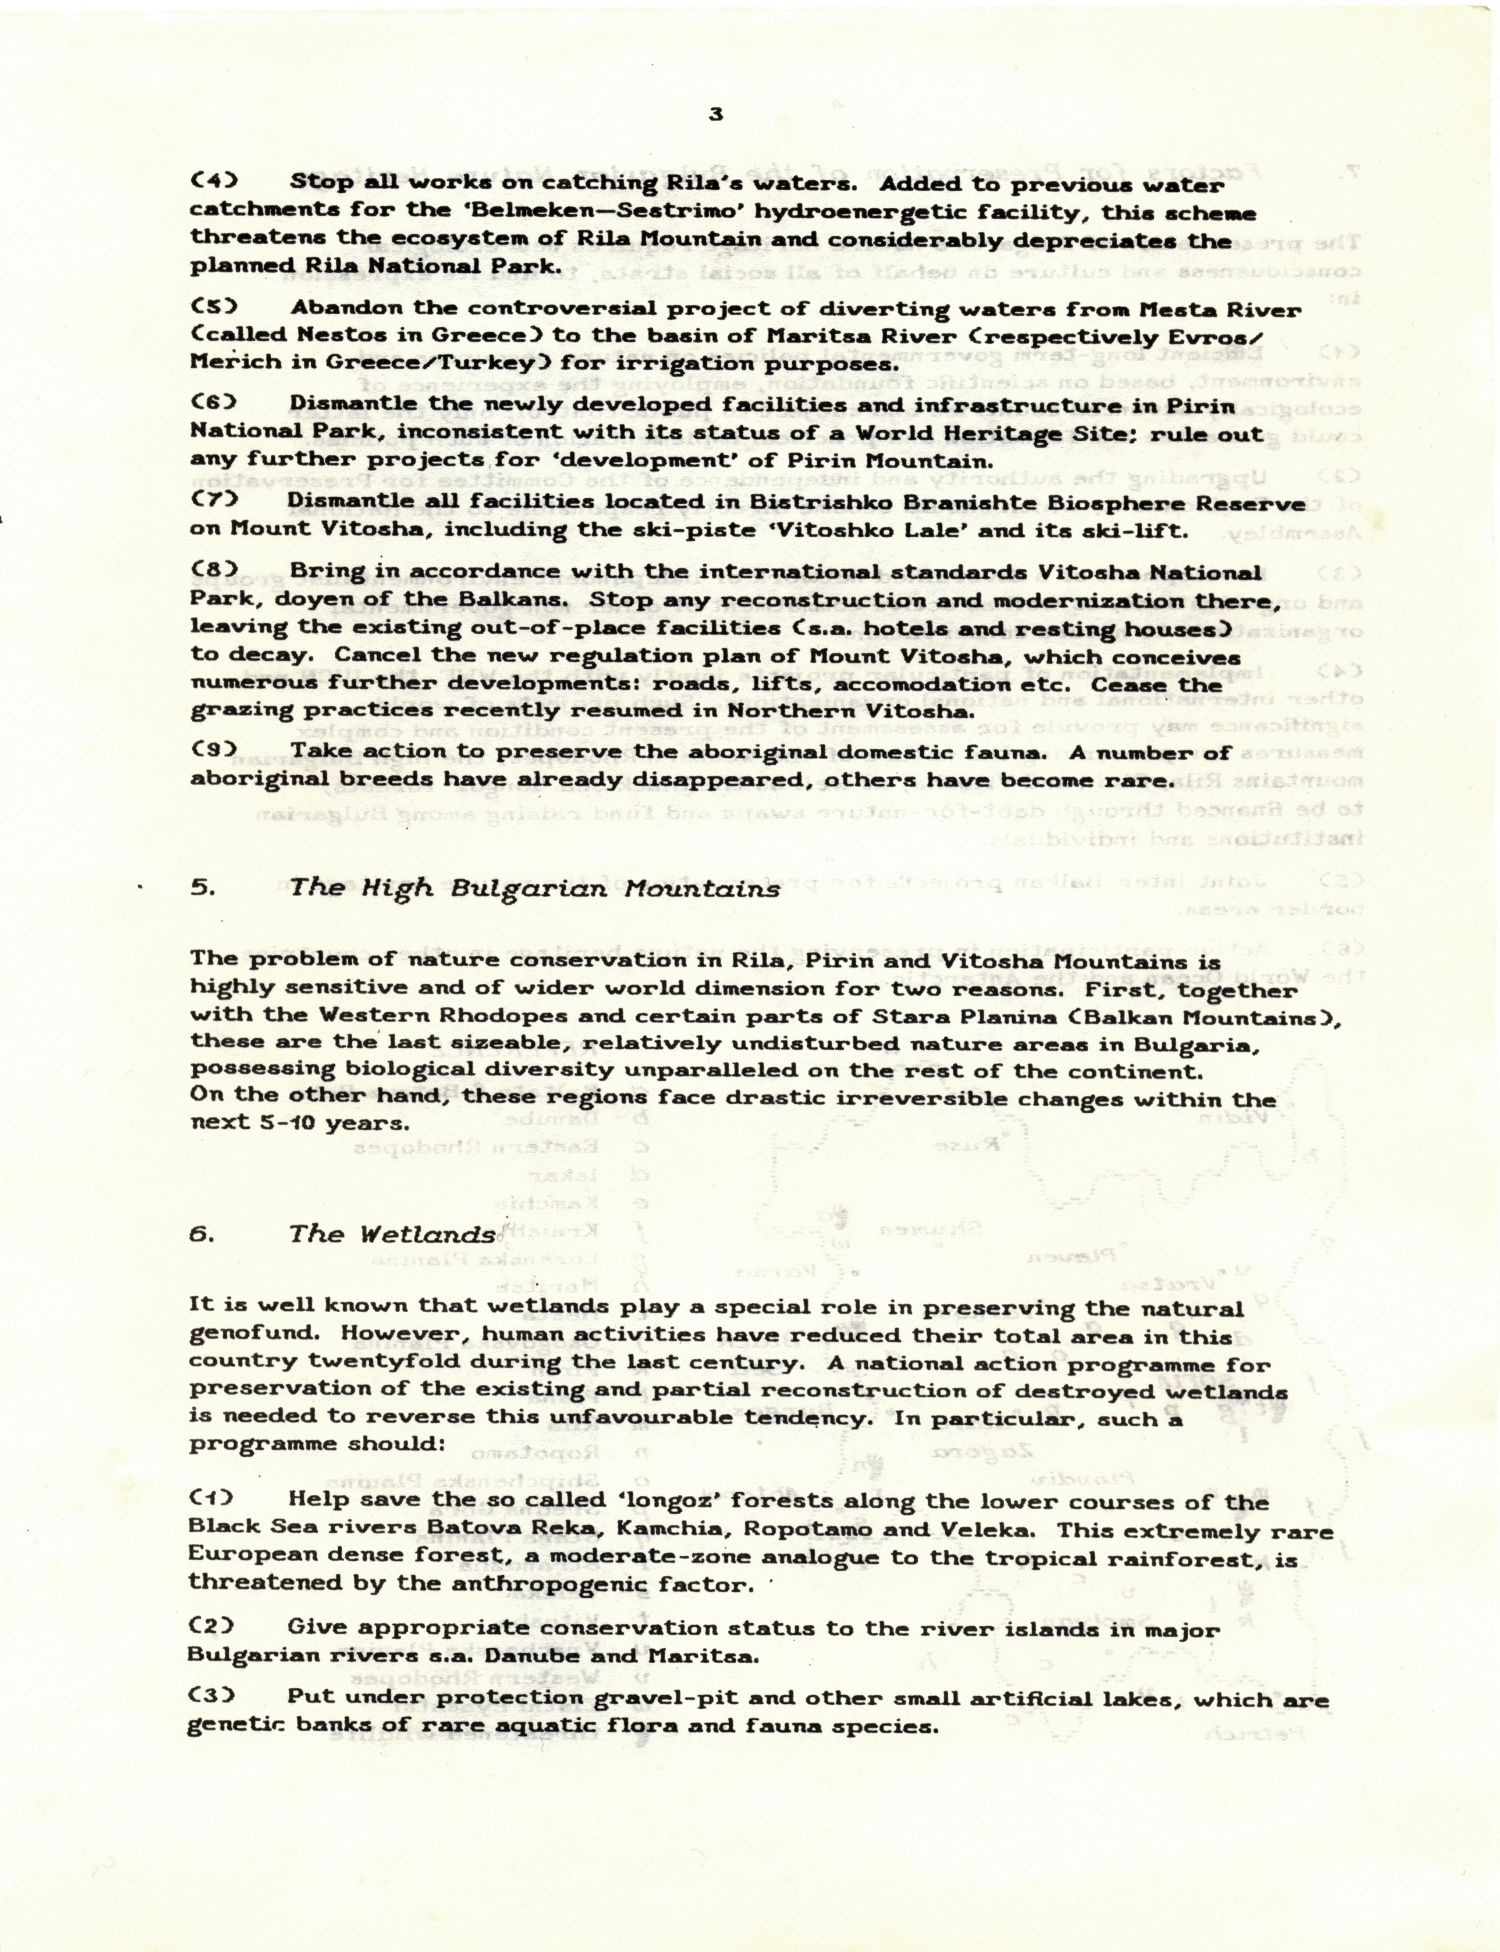 File:Charter-89-page-3 jpg - Wikimedia Commons